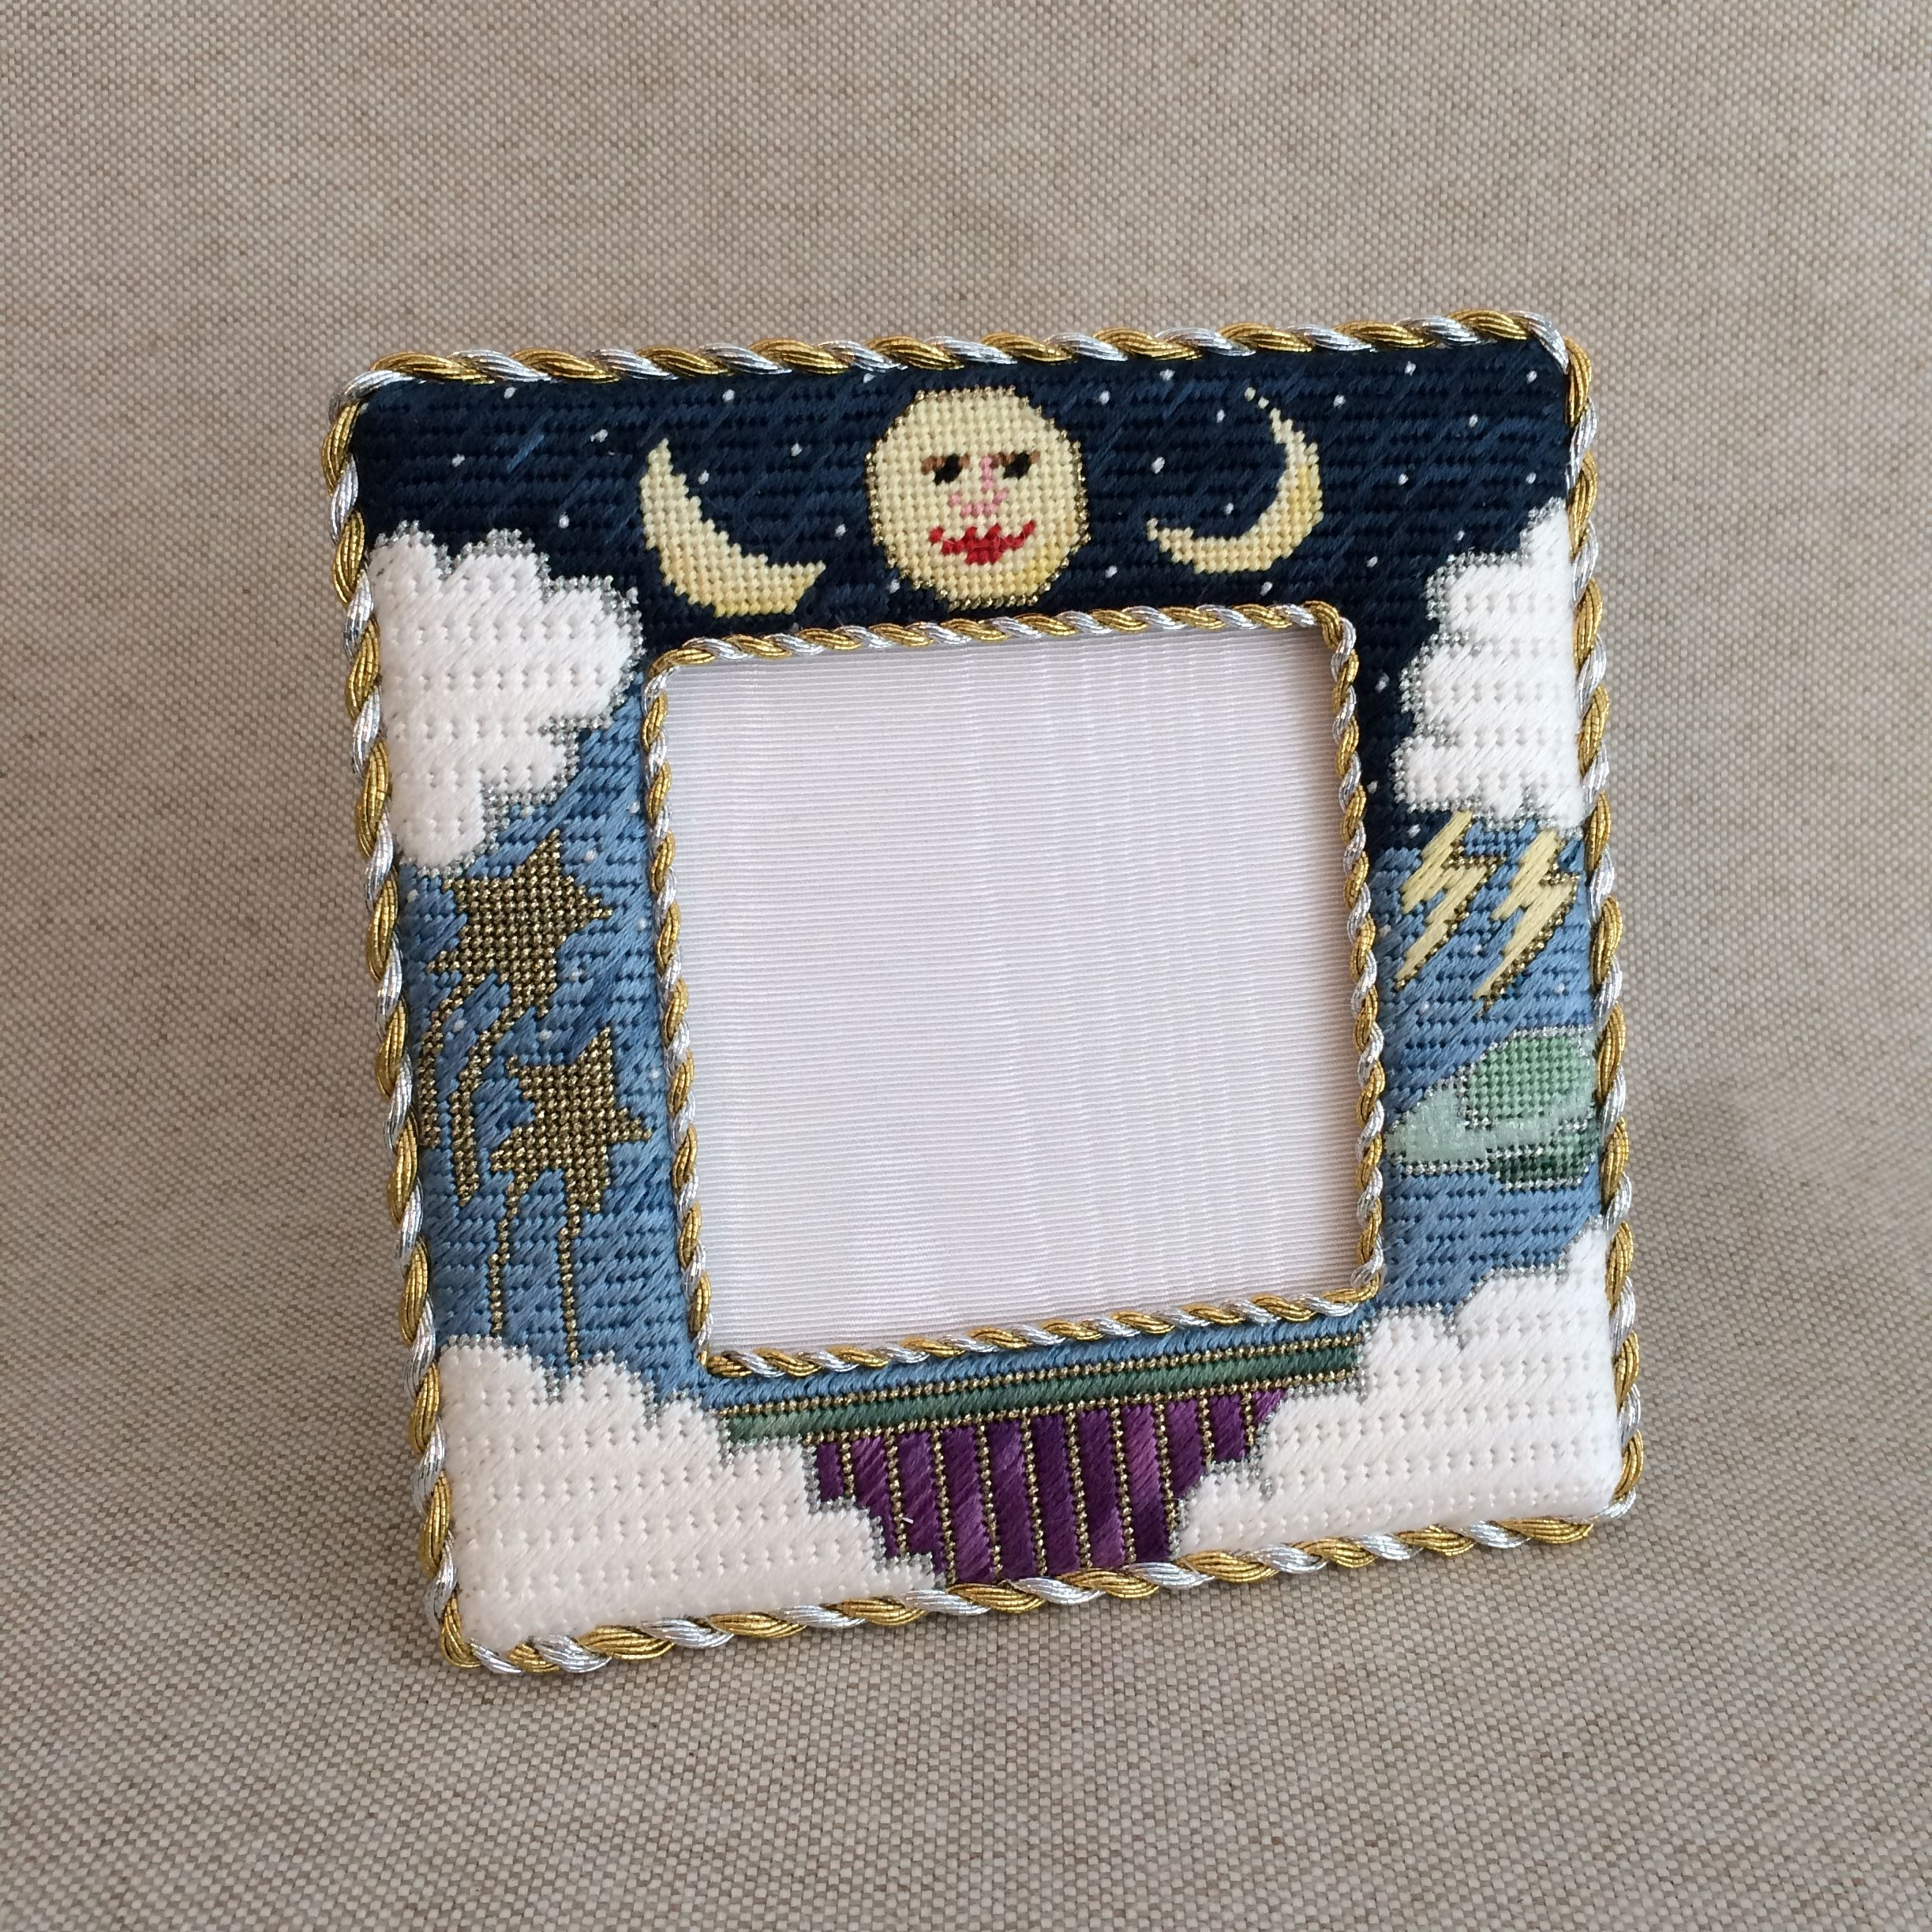 Man in the moon needlepoint frame finishing ~ Canvas by Lani ...